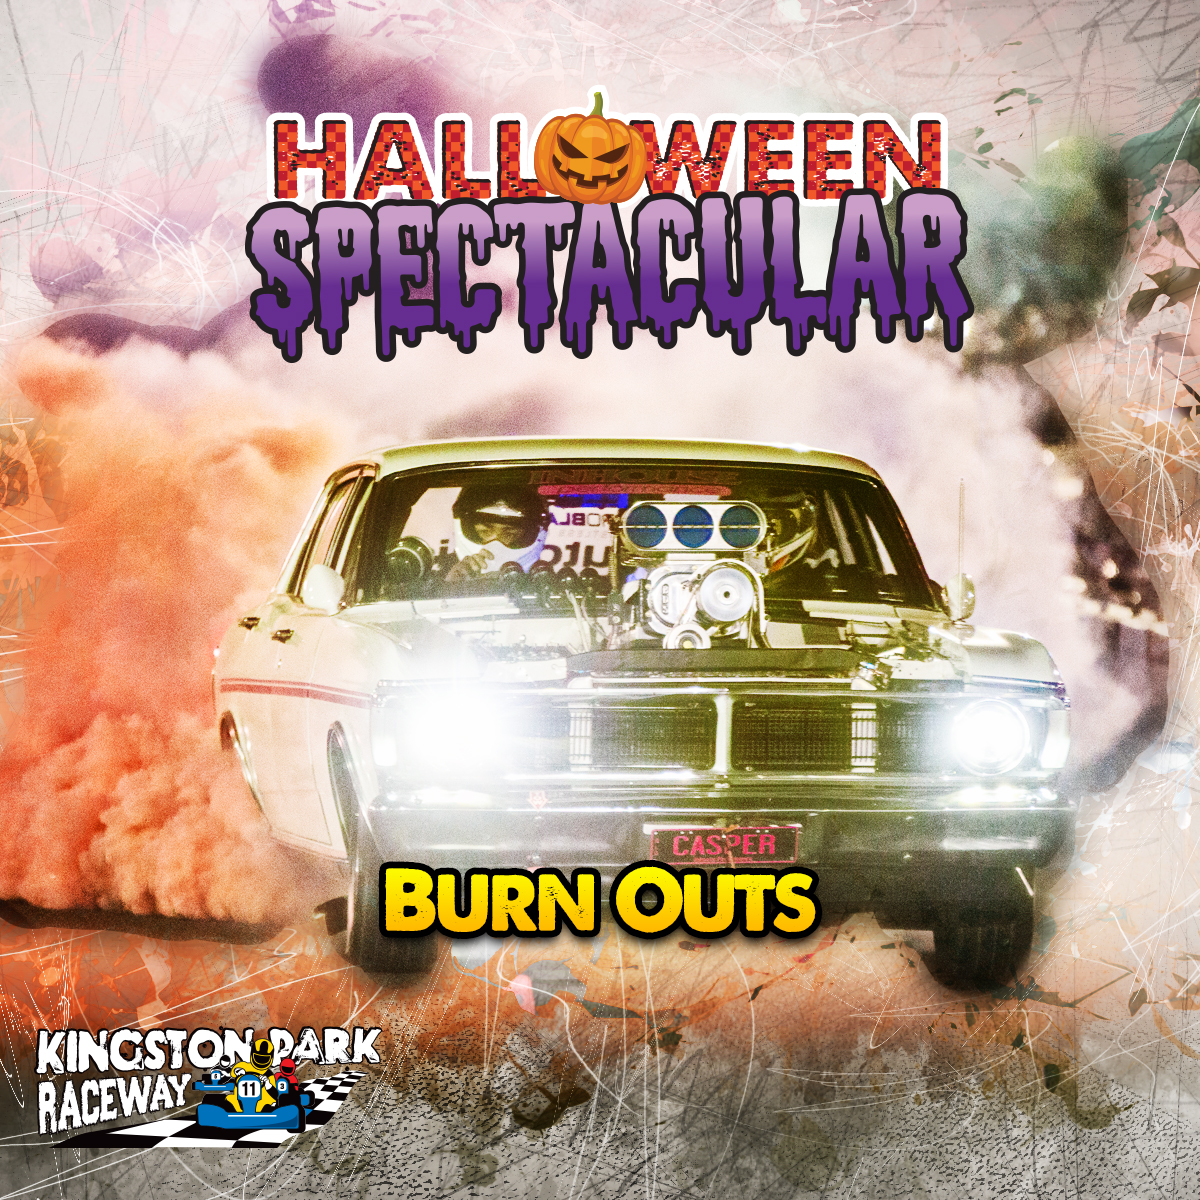 Kingston Park Raceway Halloween Spectacular